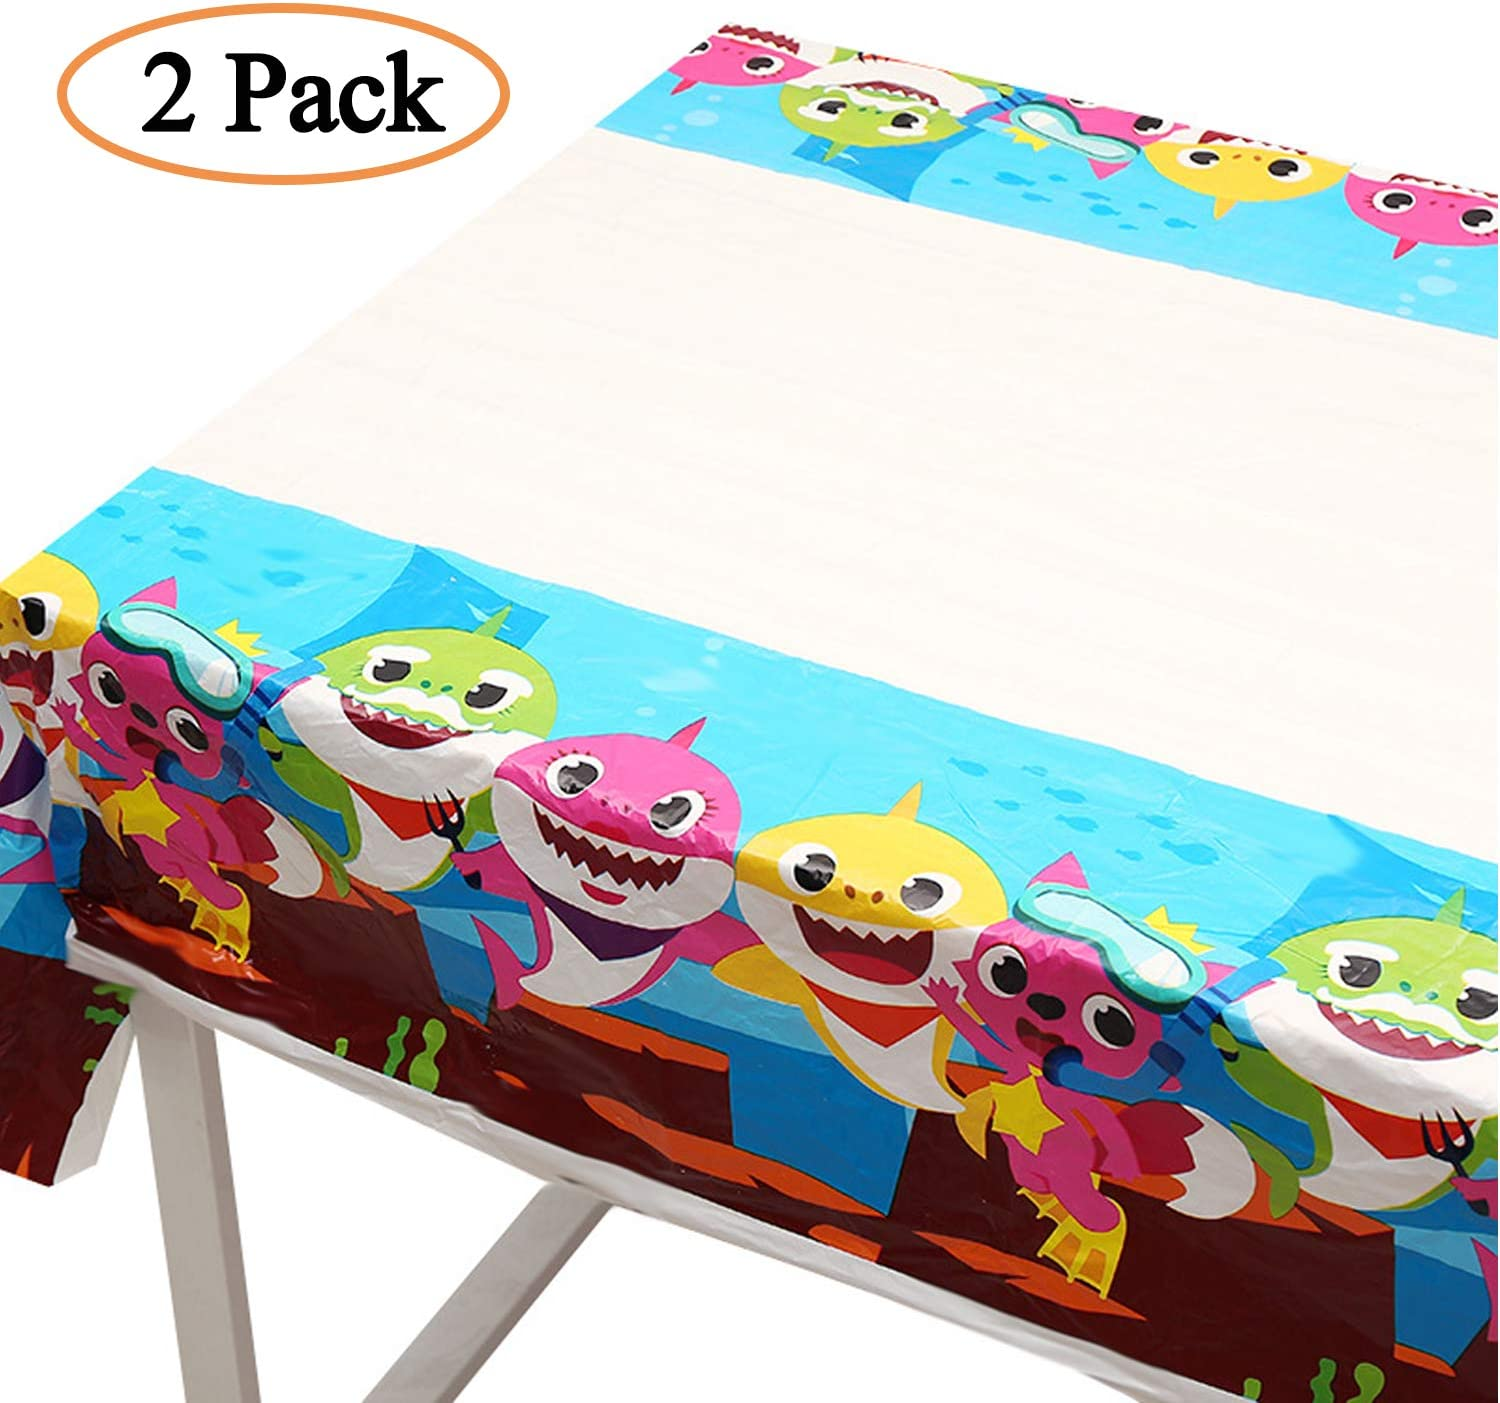 Baby Table Cover Party Supplies Decorations - Baby Shower Birthday Table Décor Cloth Plastic Covers (2 Pcs)